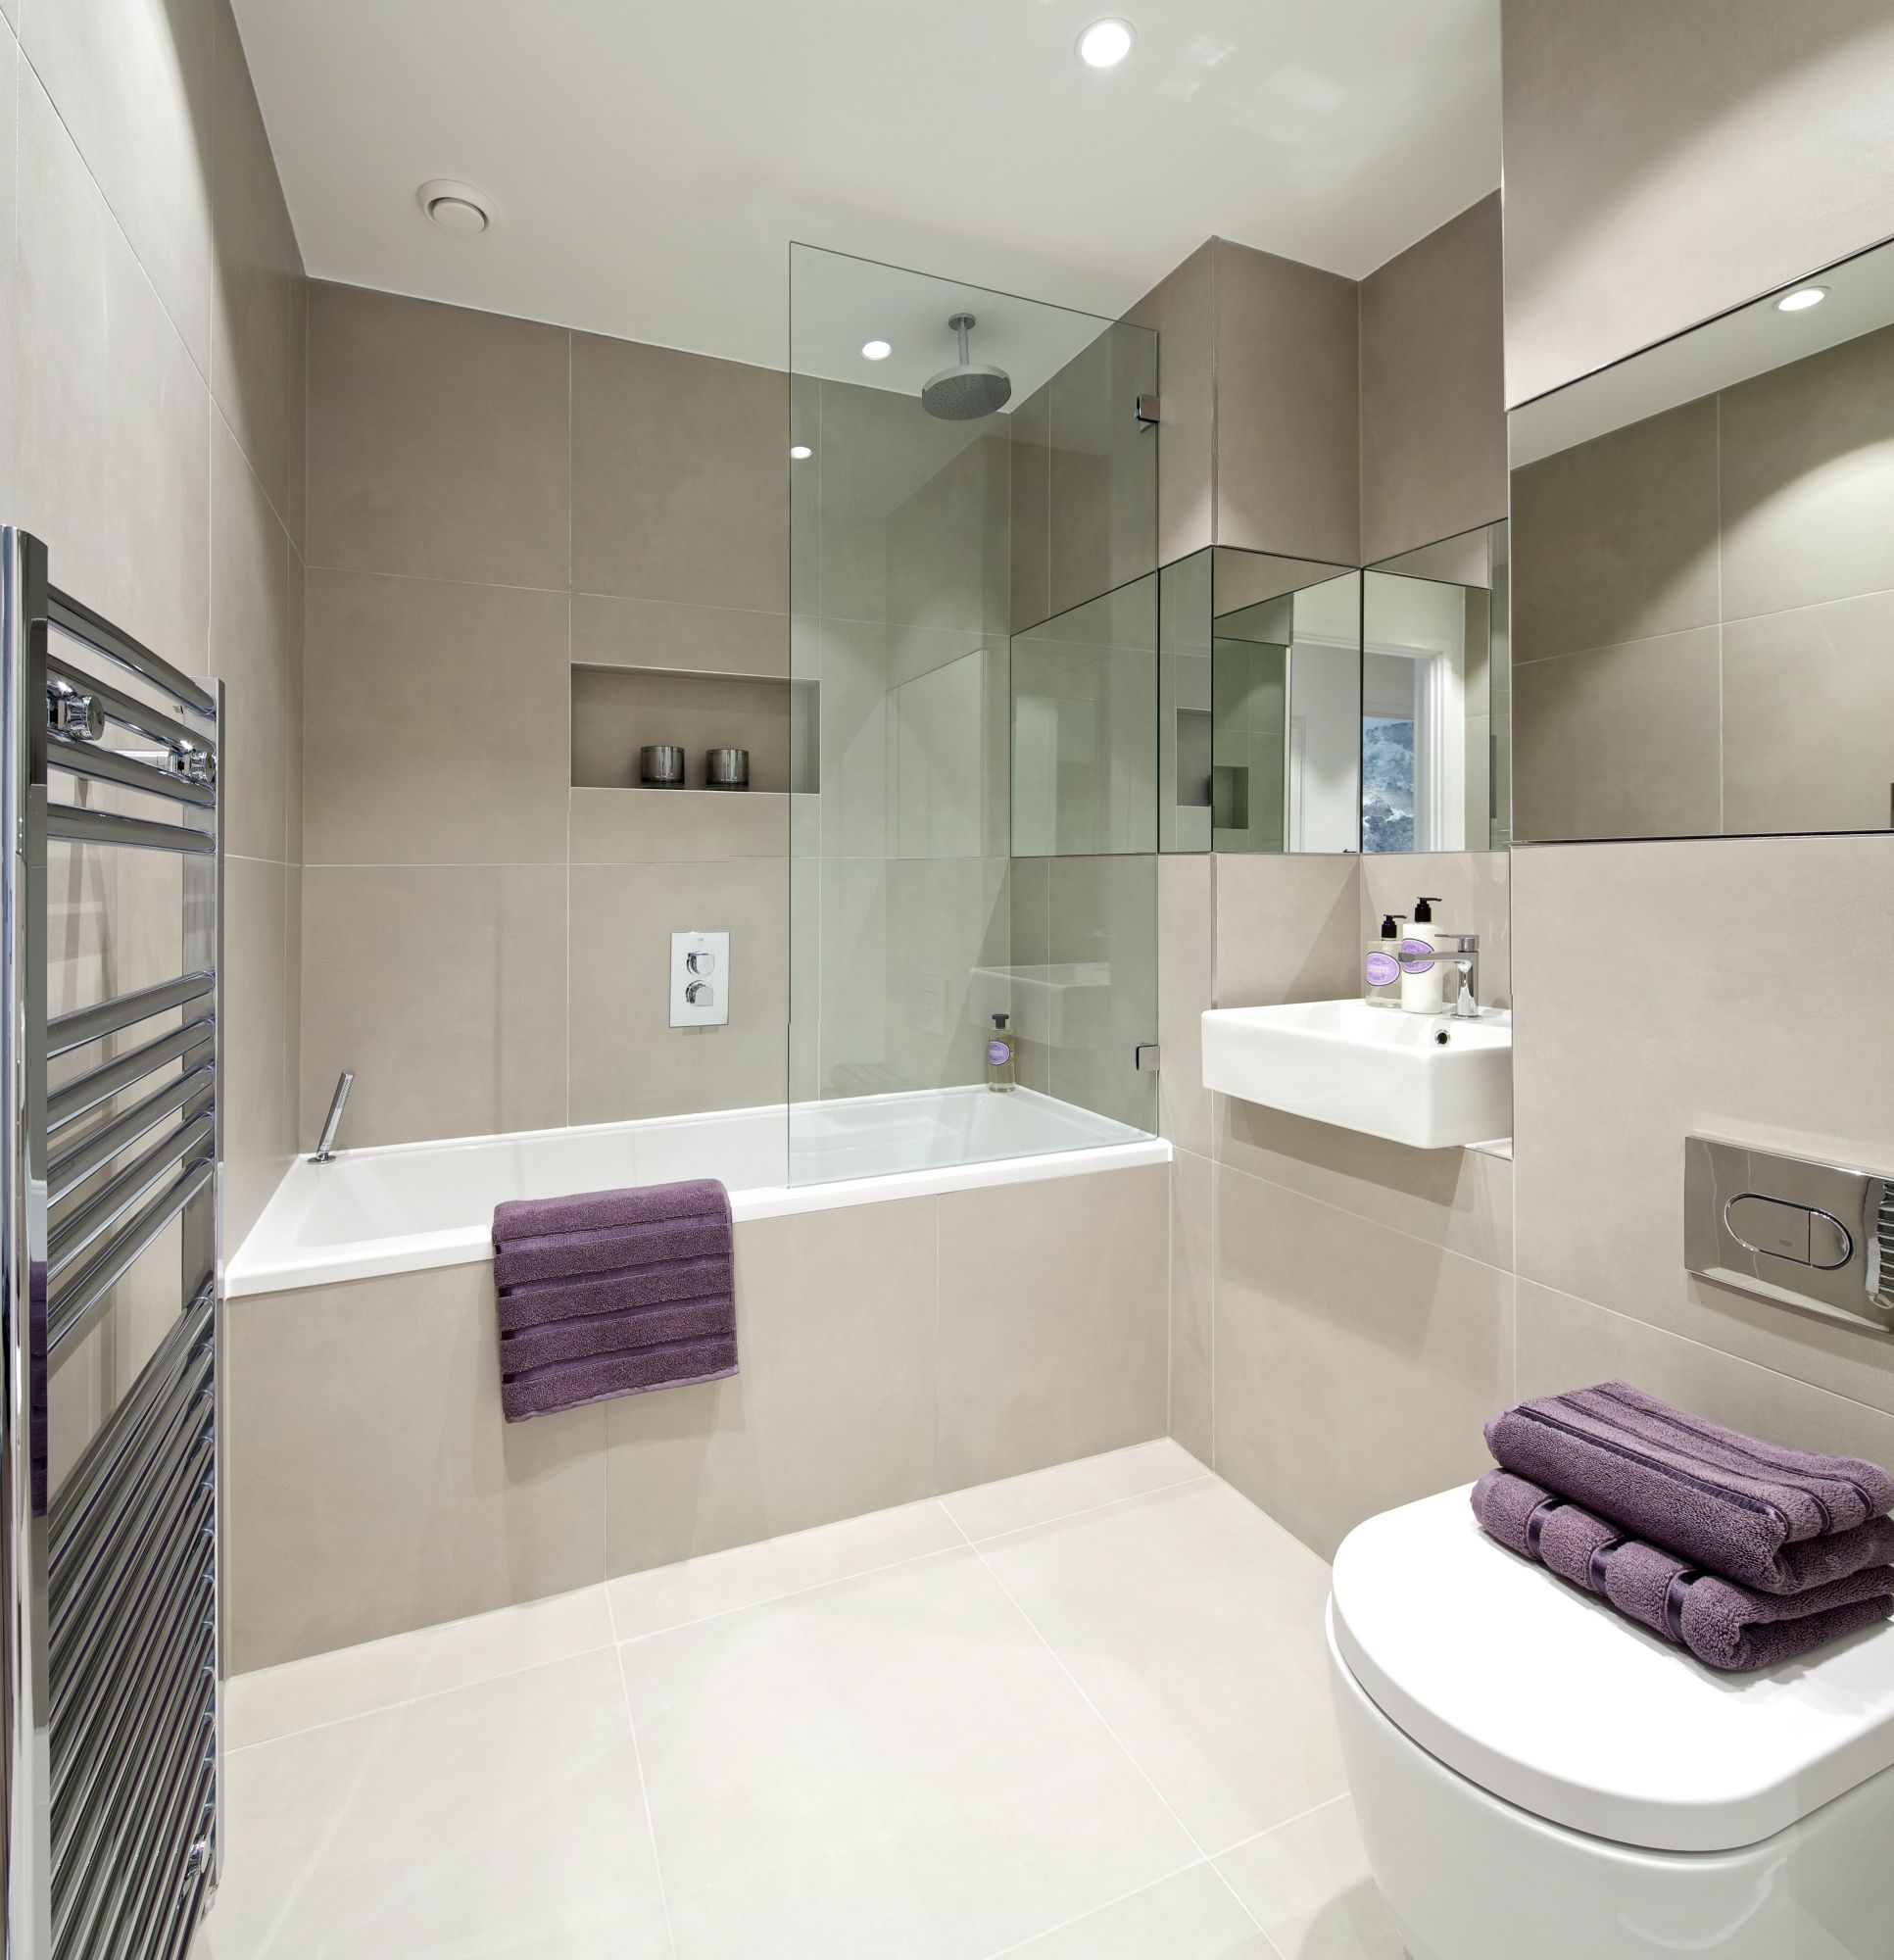 Stunning home interiors bathroom another stunning show for Bathroom ideas for small apartment bathrooms